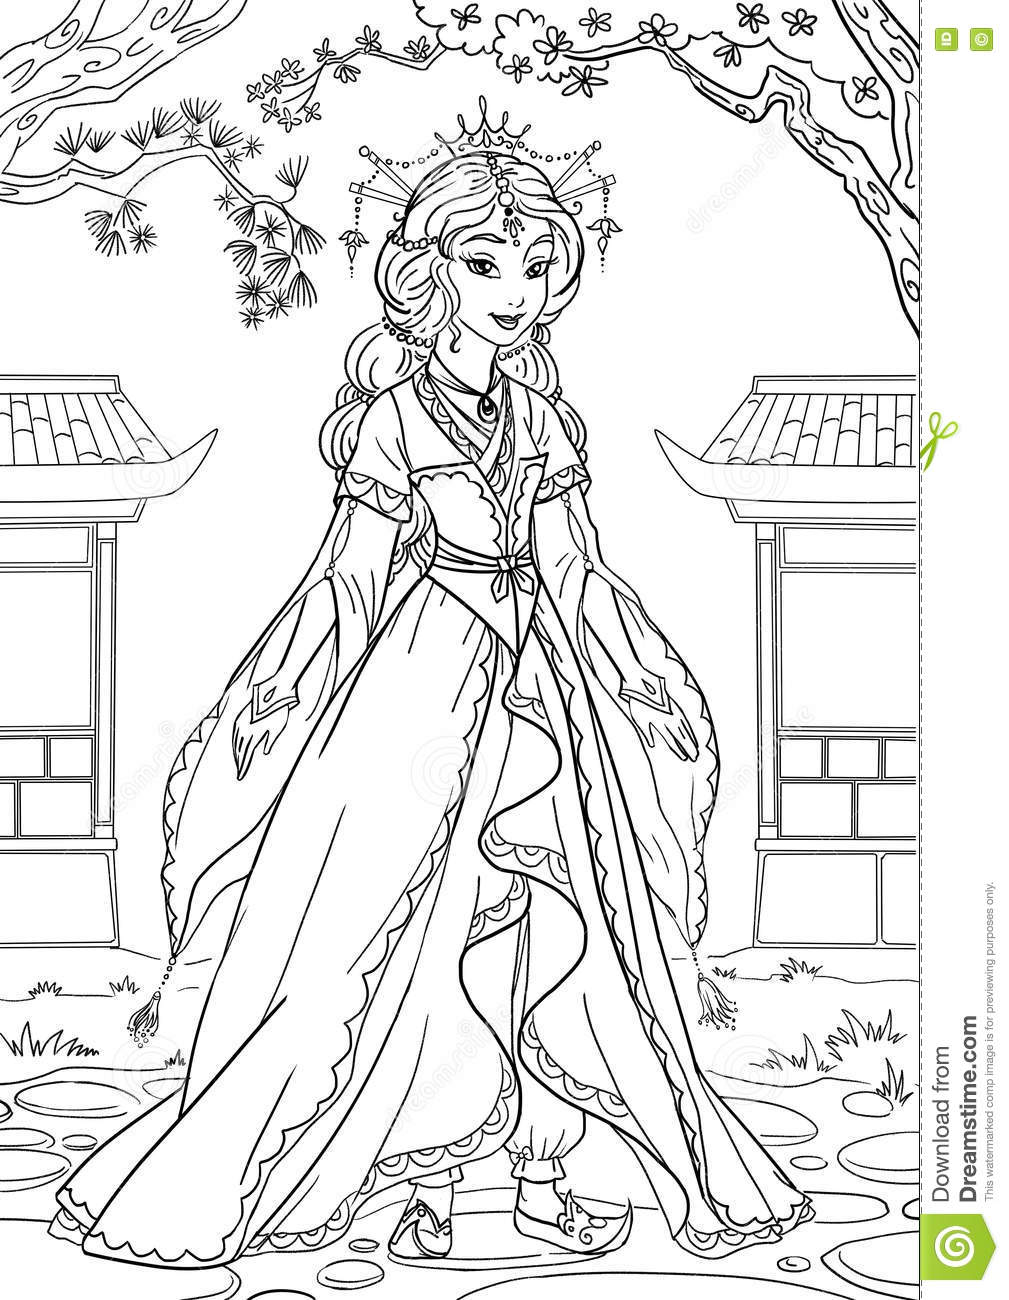 japanese princess coloring pages - photo#8